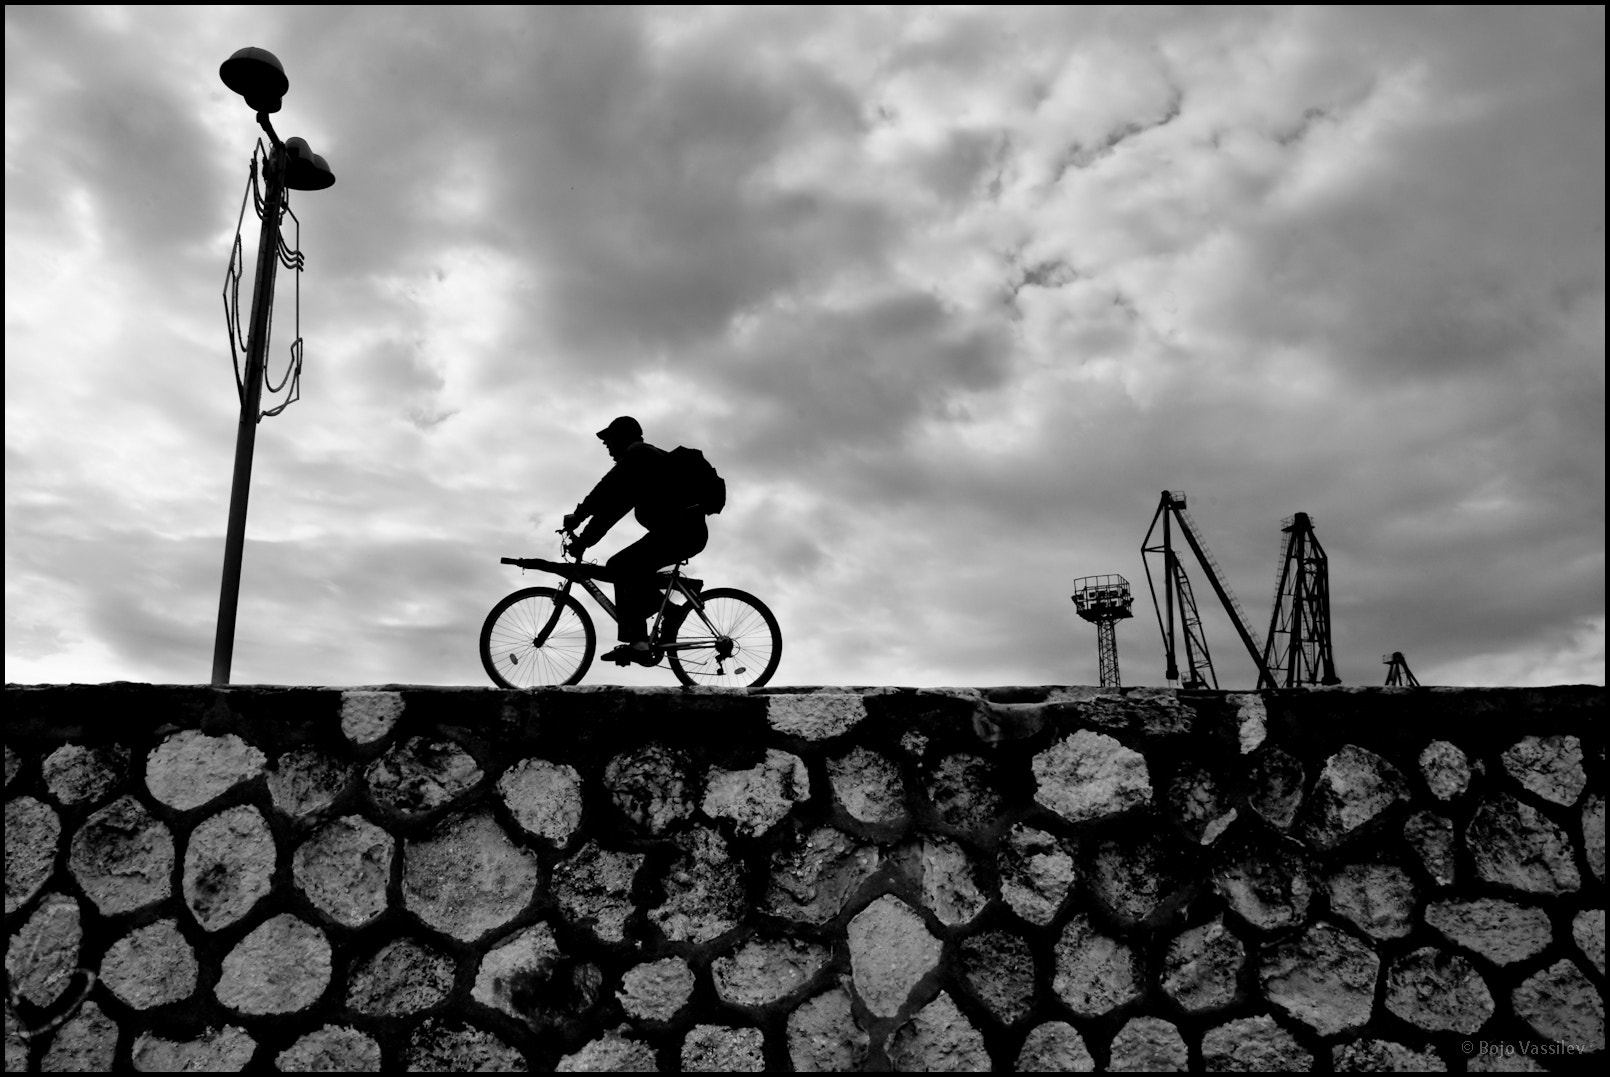 Photograph Fisherman on a bike by Bojo Vassilev on 500px